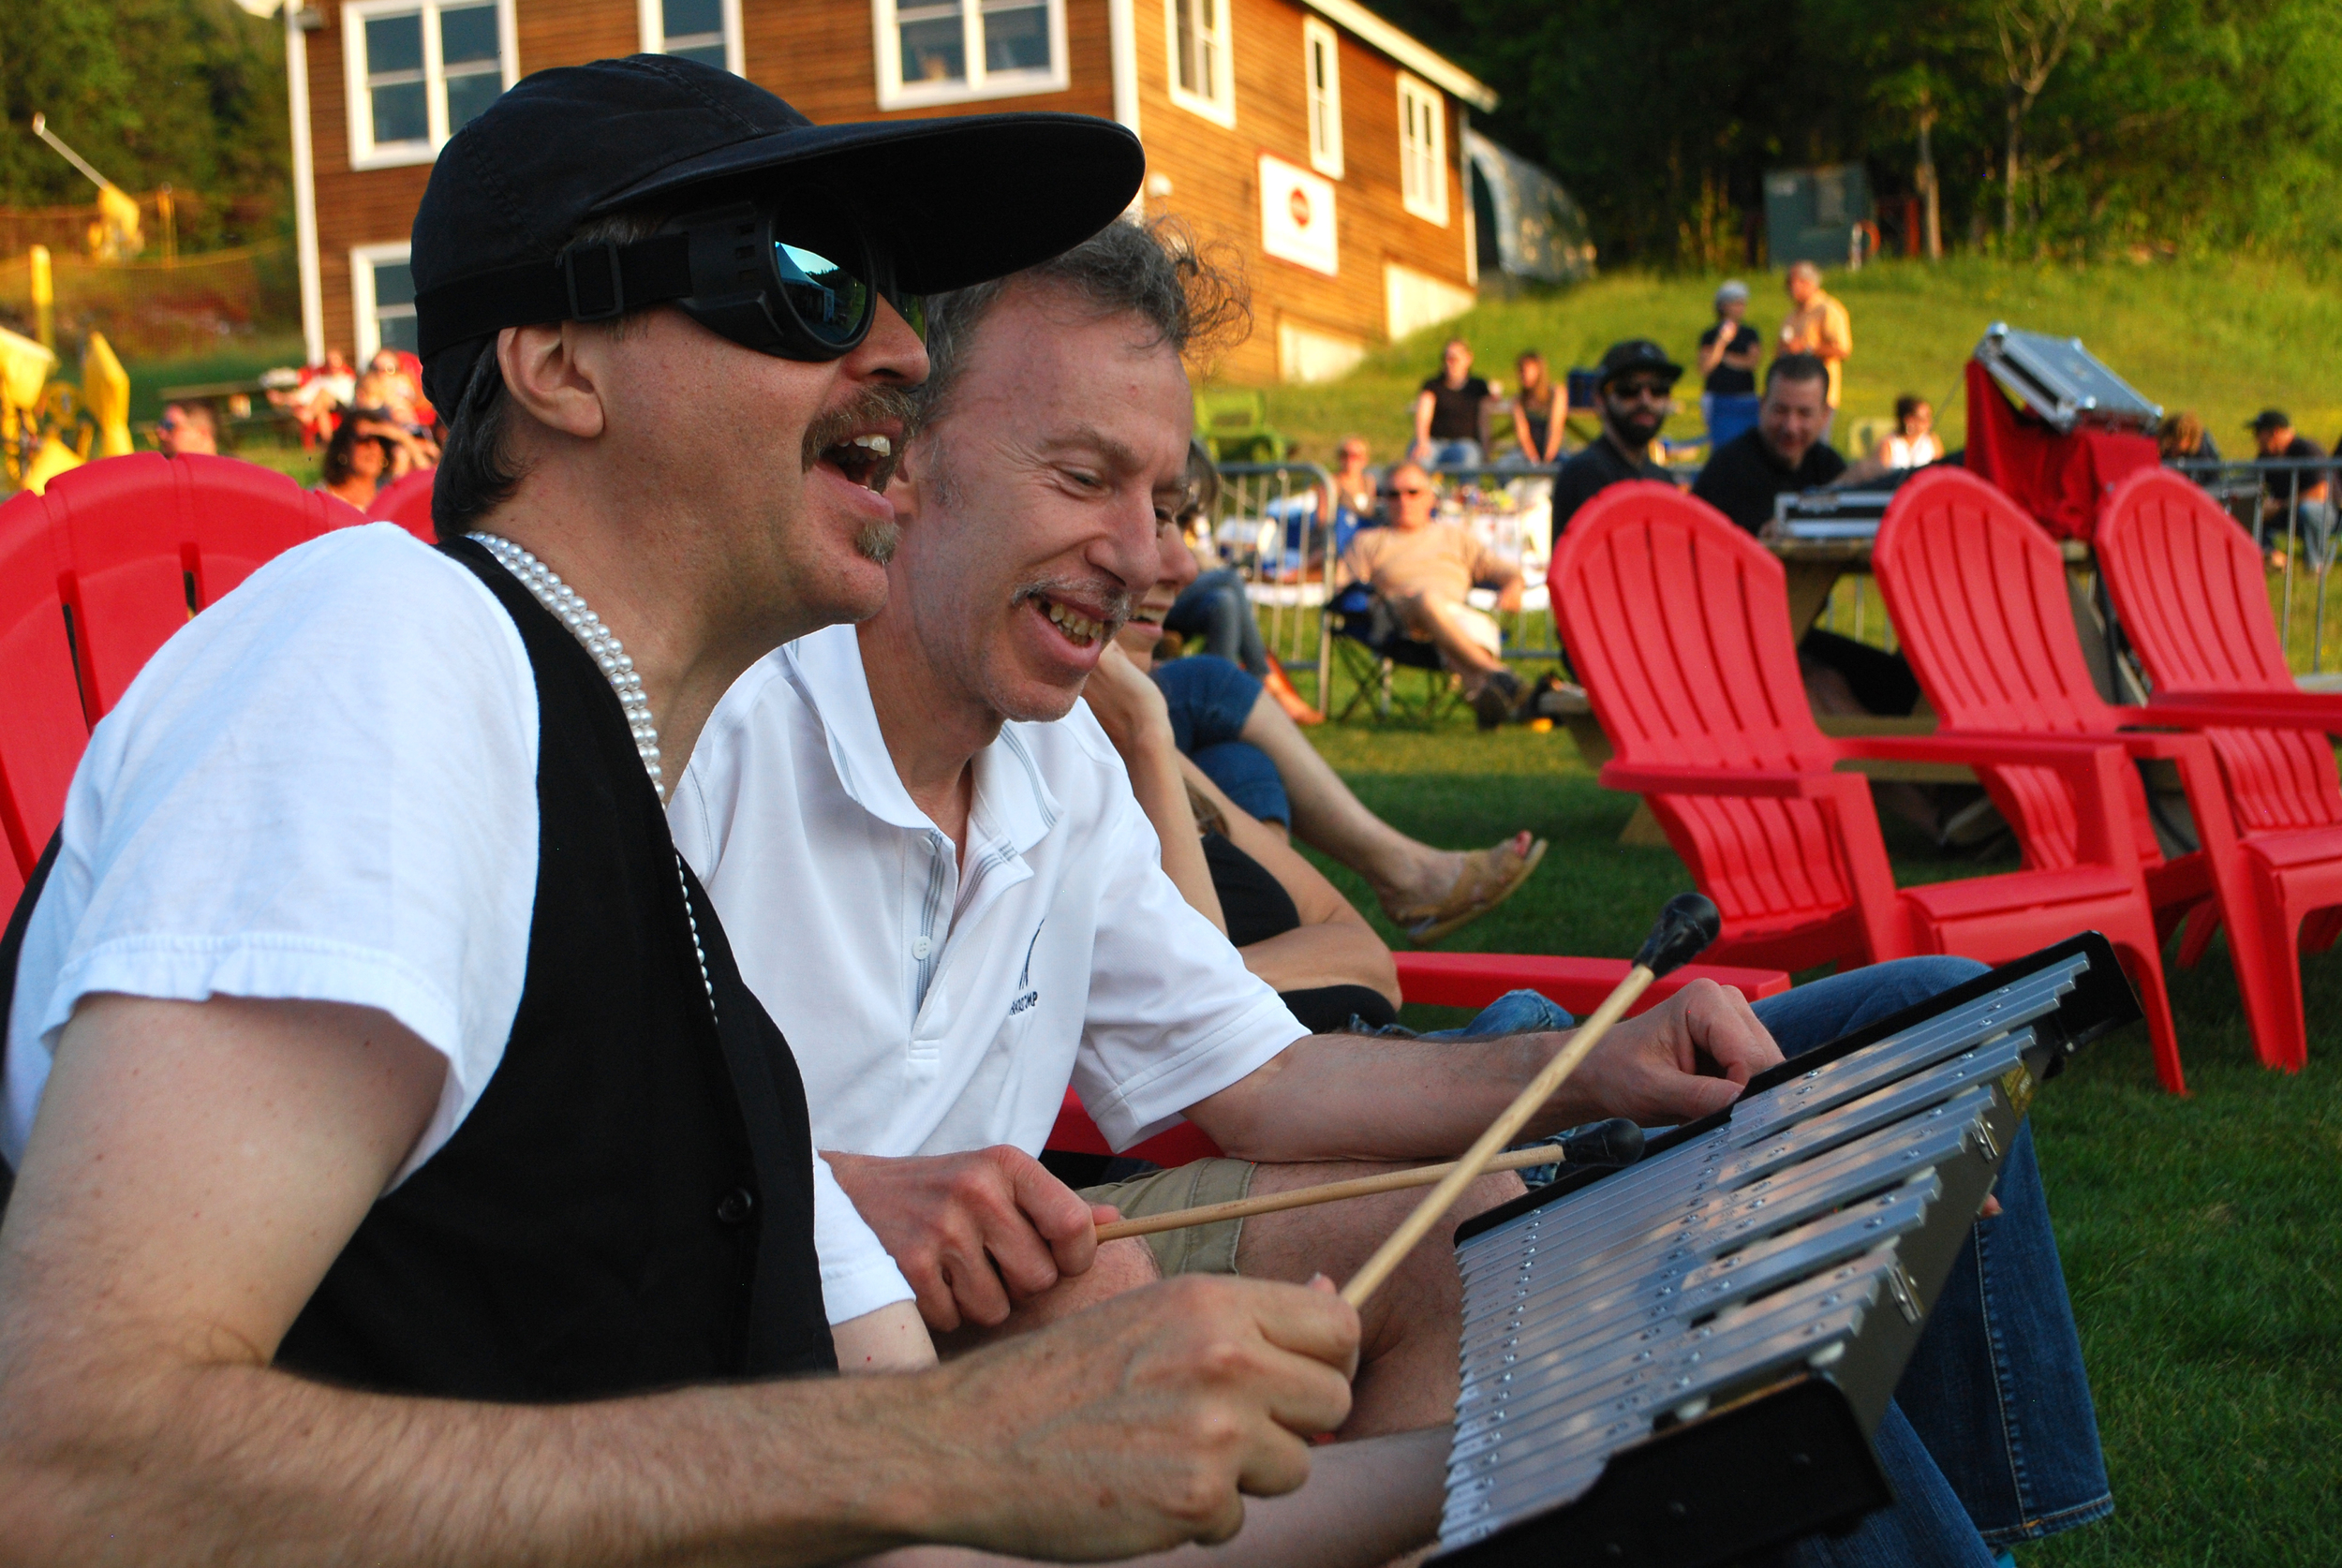 The Right Reverend Dean Dawg rocks out on the glockenspiel with a fan from the crowd!